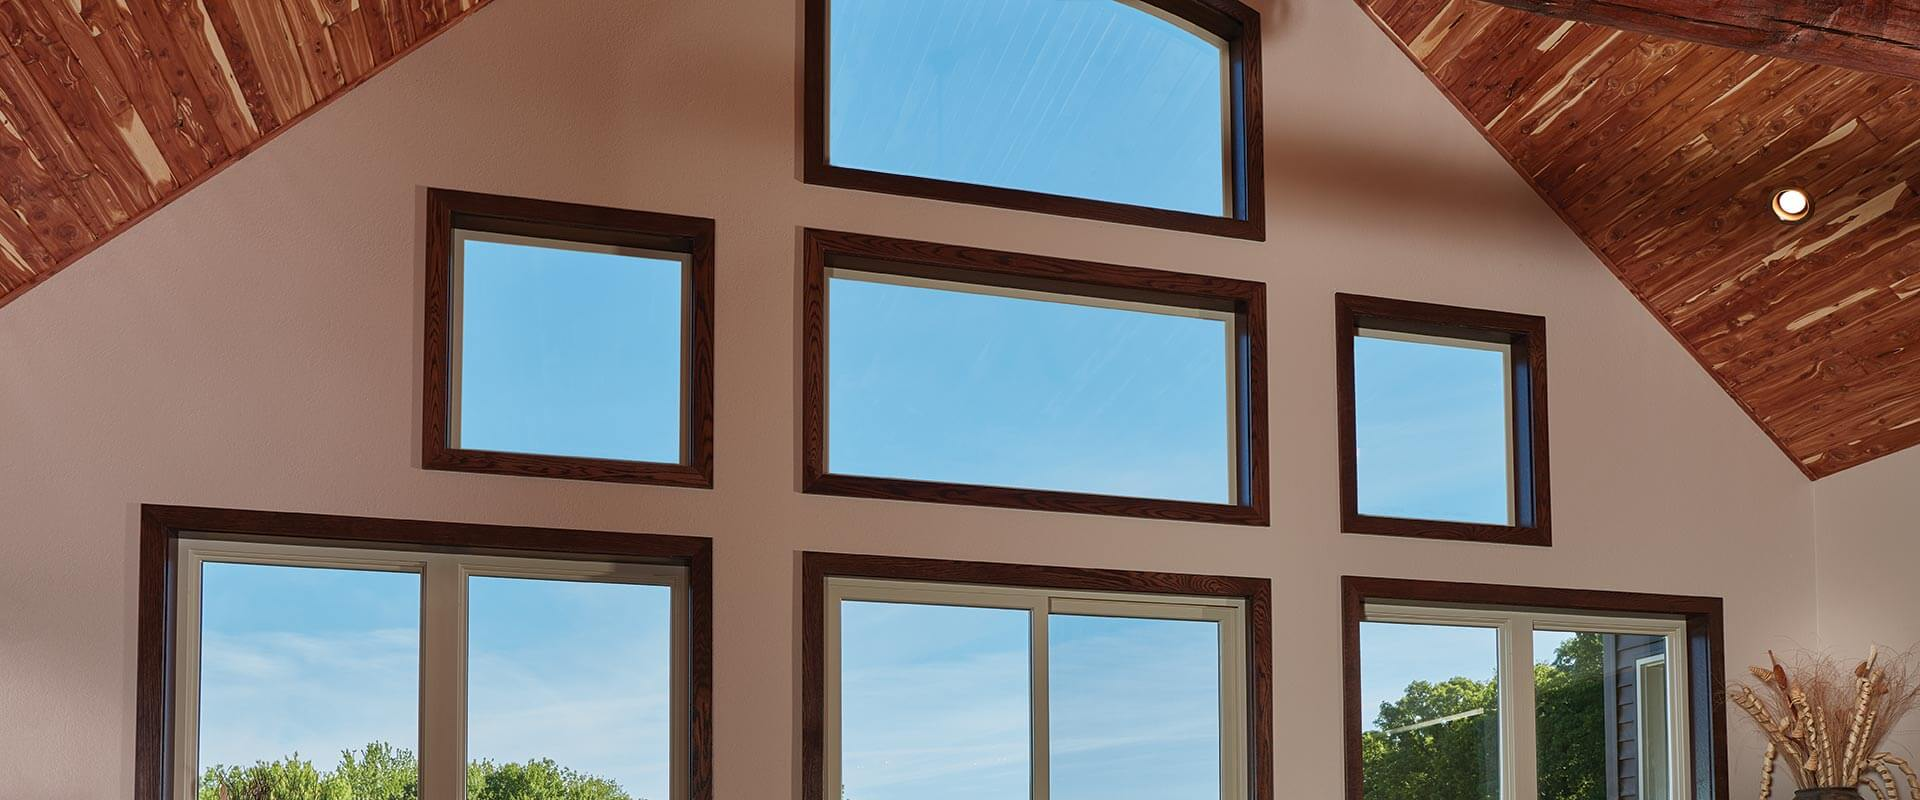 Forgent Direct Set Windows for New Construction AB600